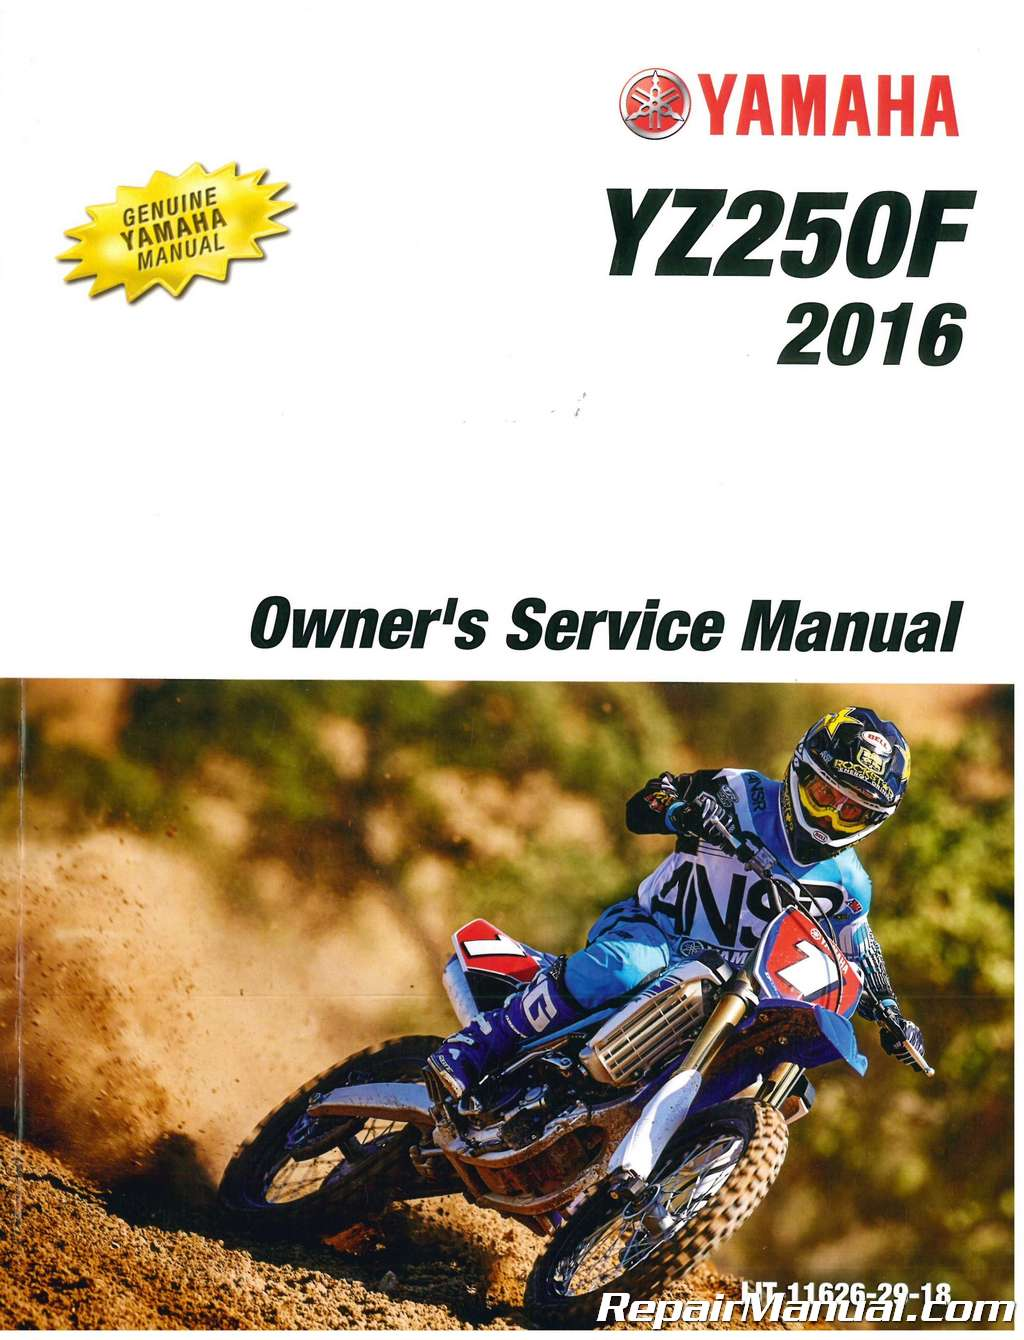 Workshop manual intruder 125